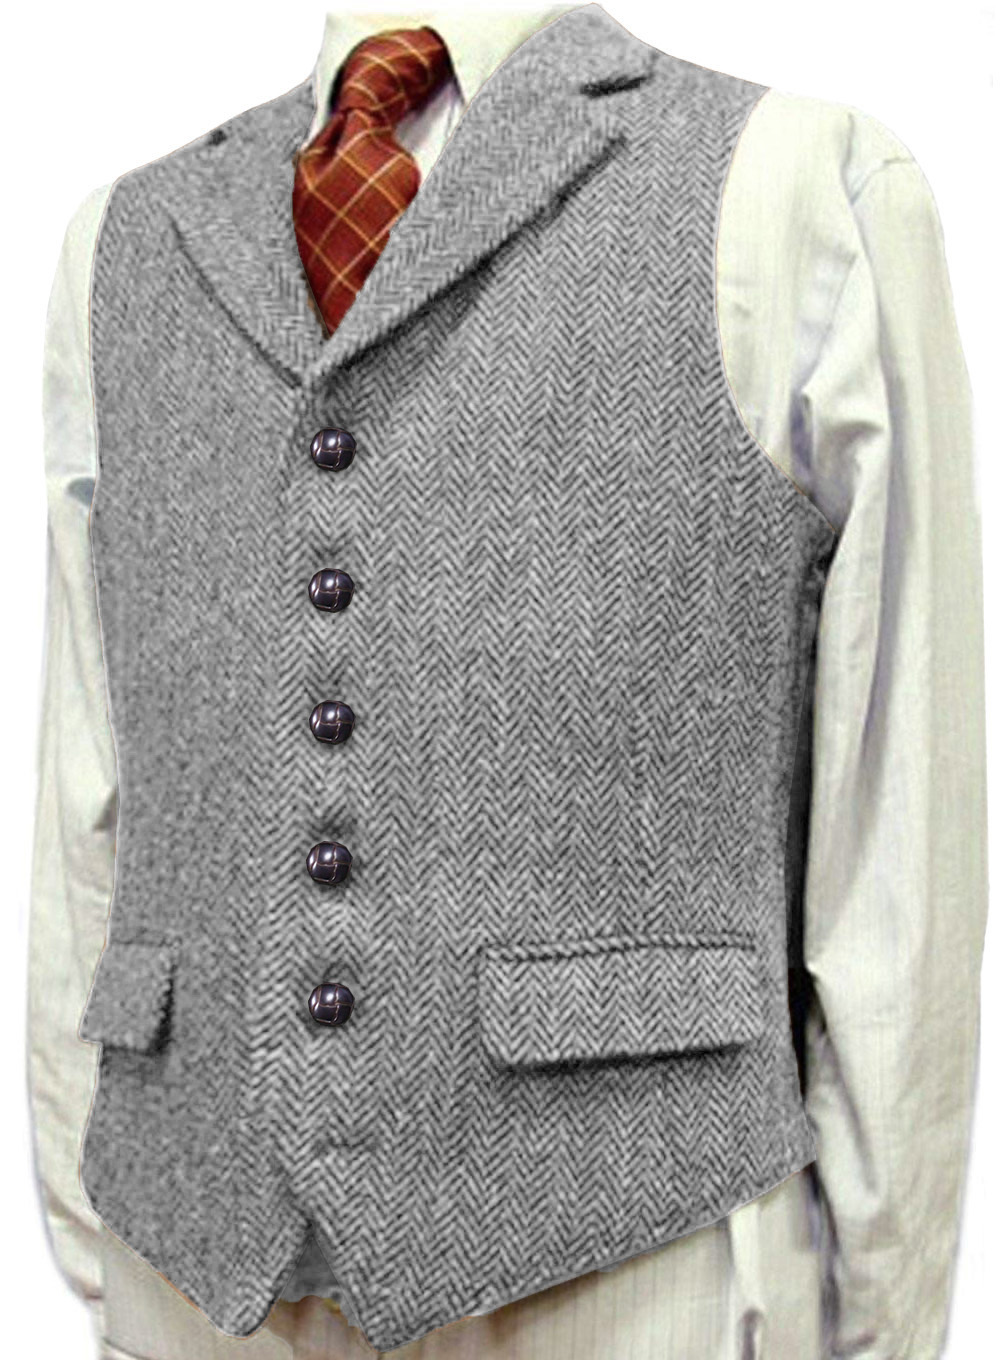 Mens Vest Casual Tweed Wool Slim Fit Notched Lapel Grey/Brown/Black Classic For Wedding Groomsmen Herringbone Men Waistcoat